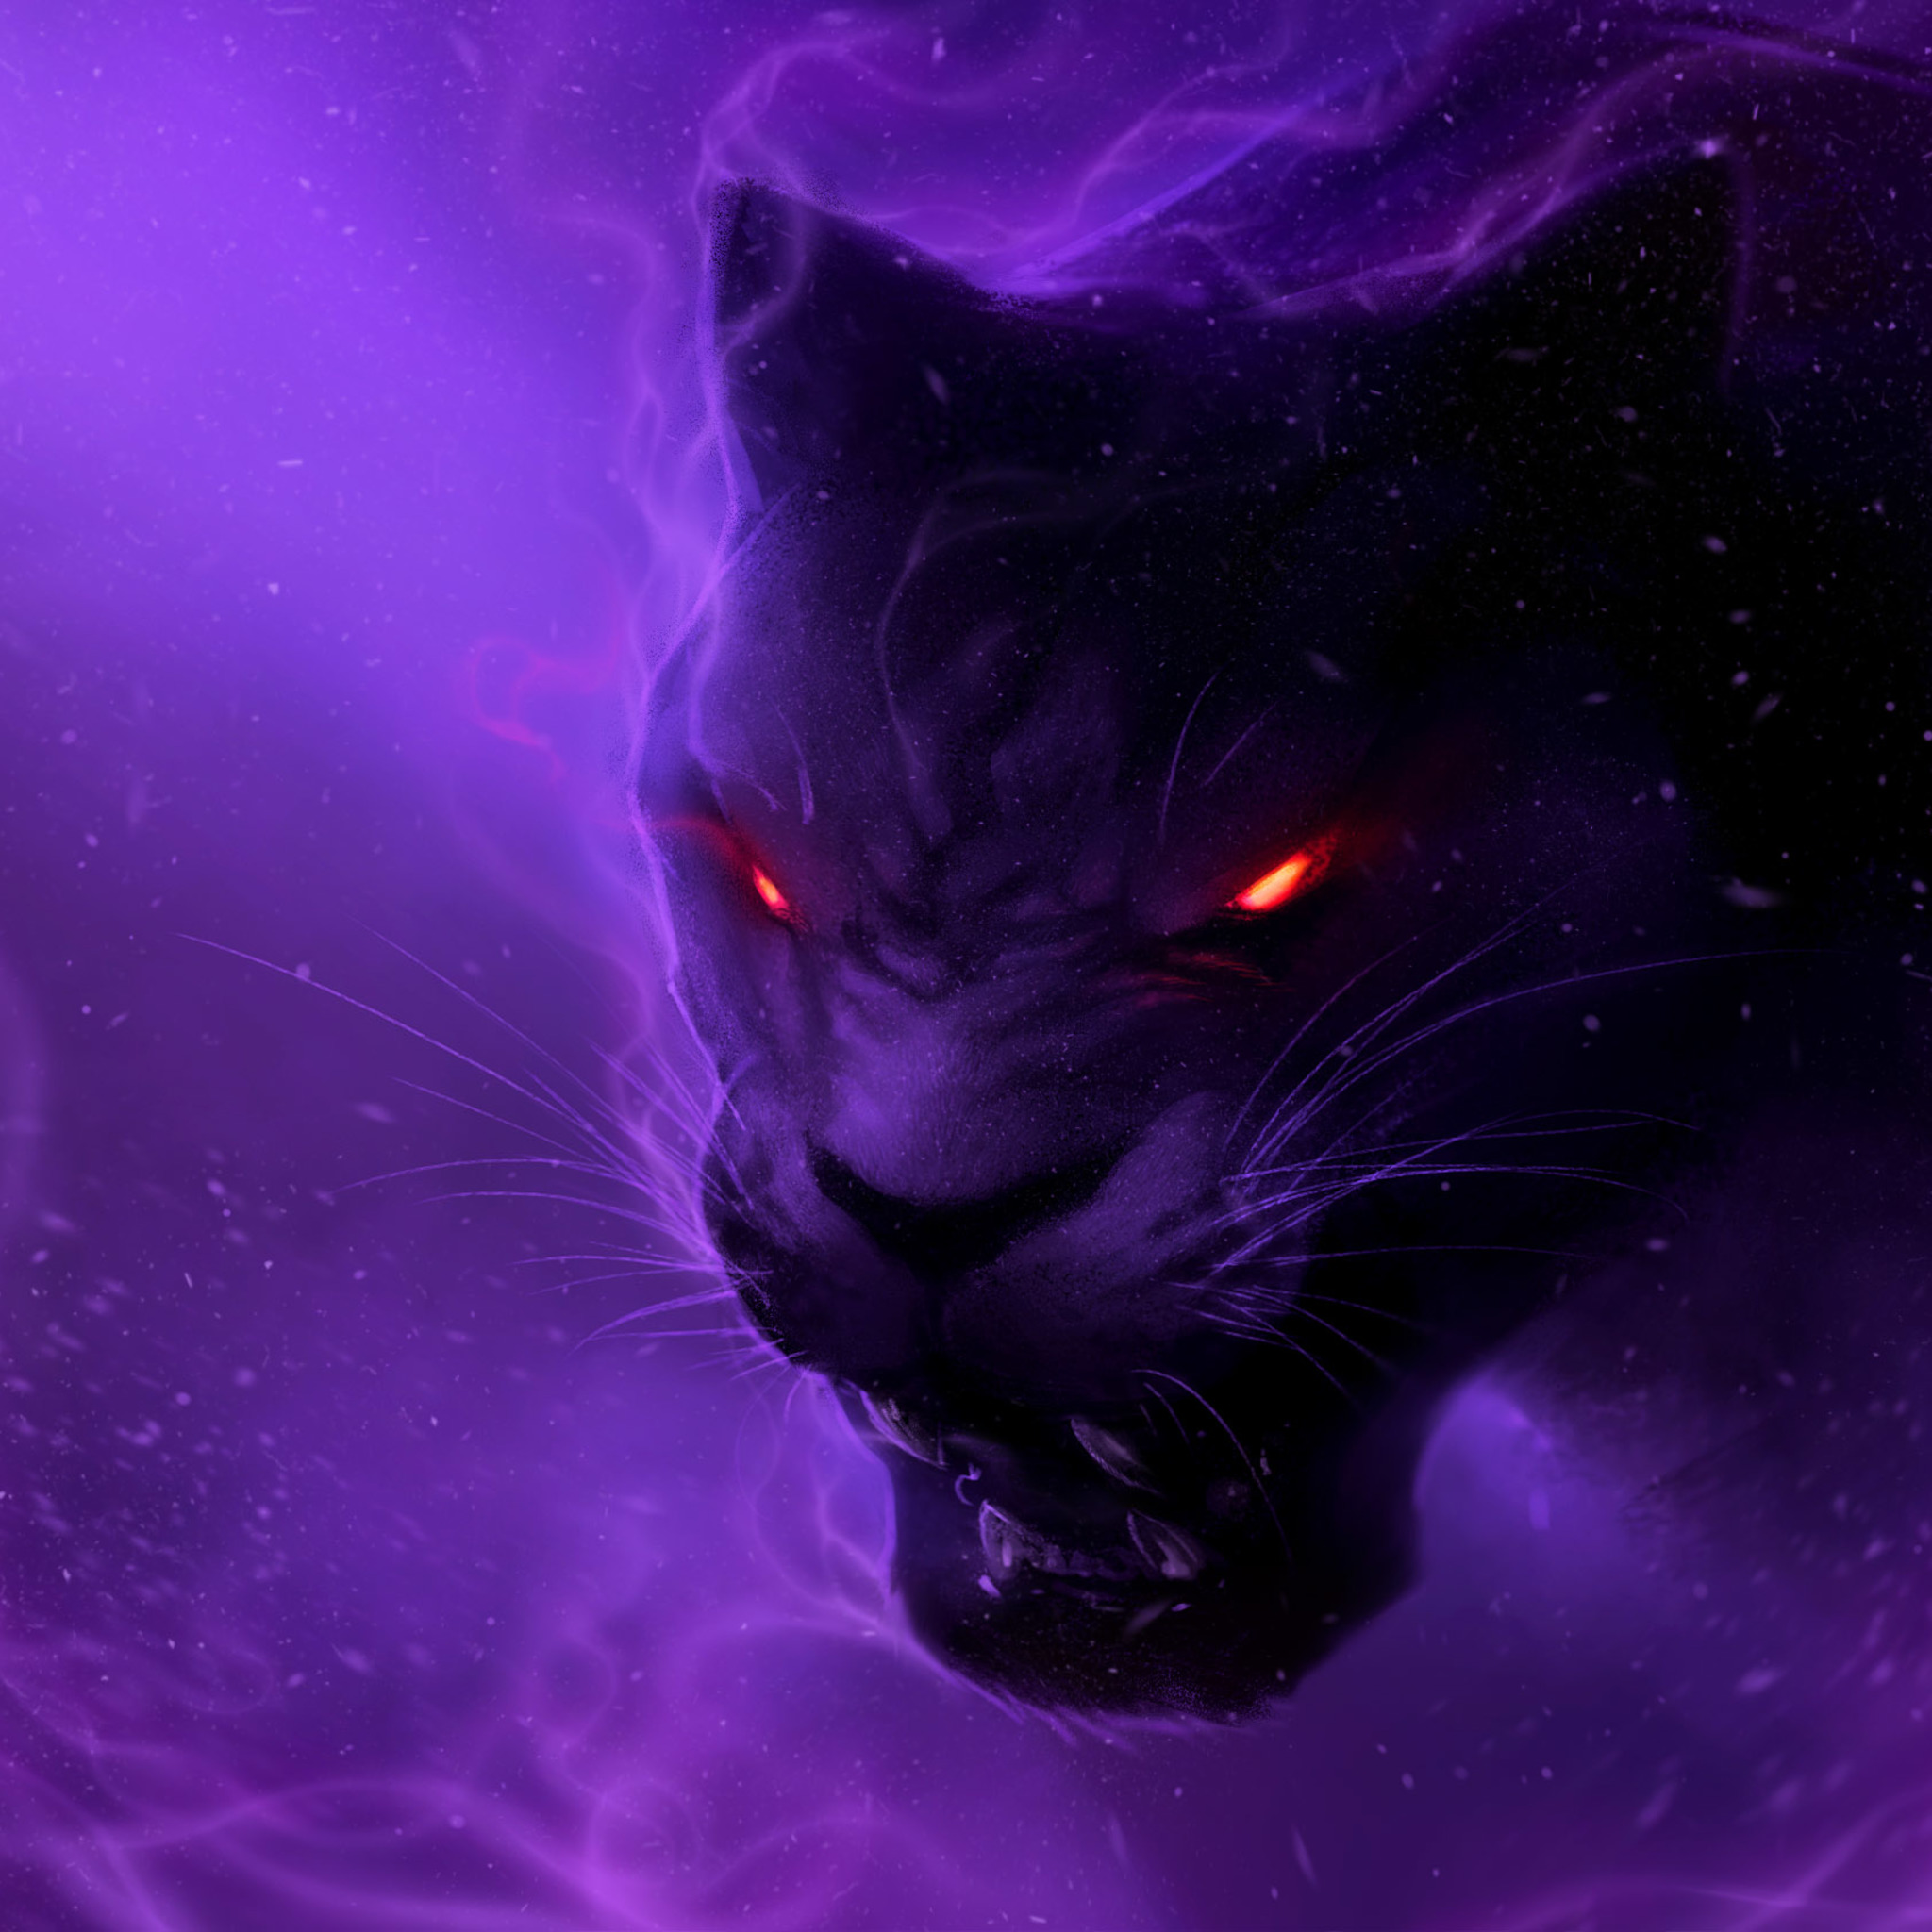 Black Panther Fantasy Wallpaper